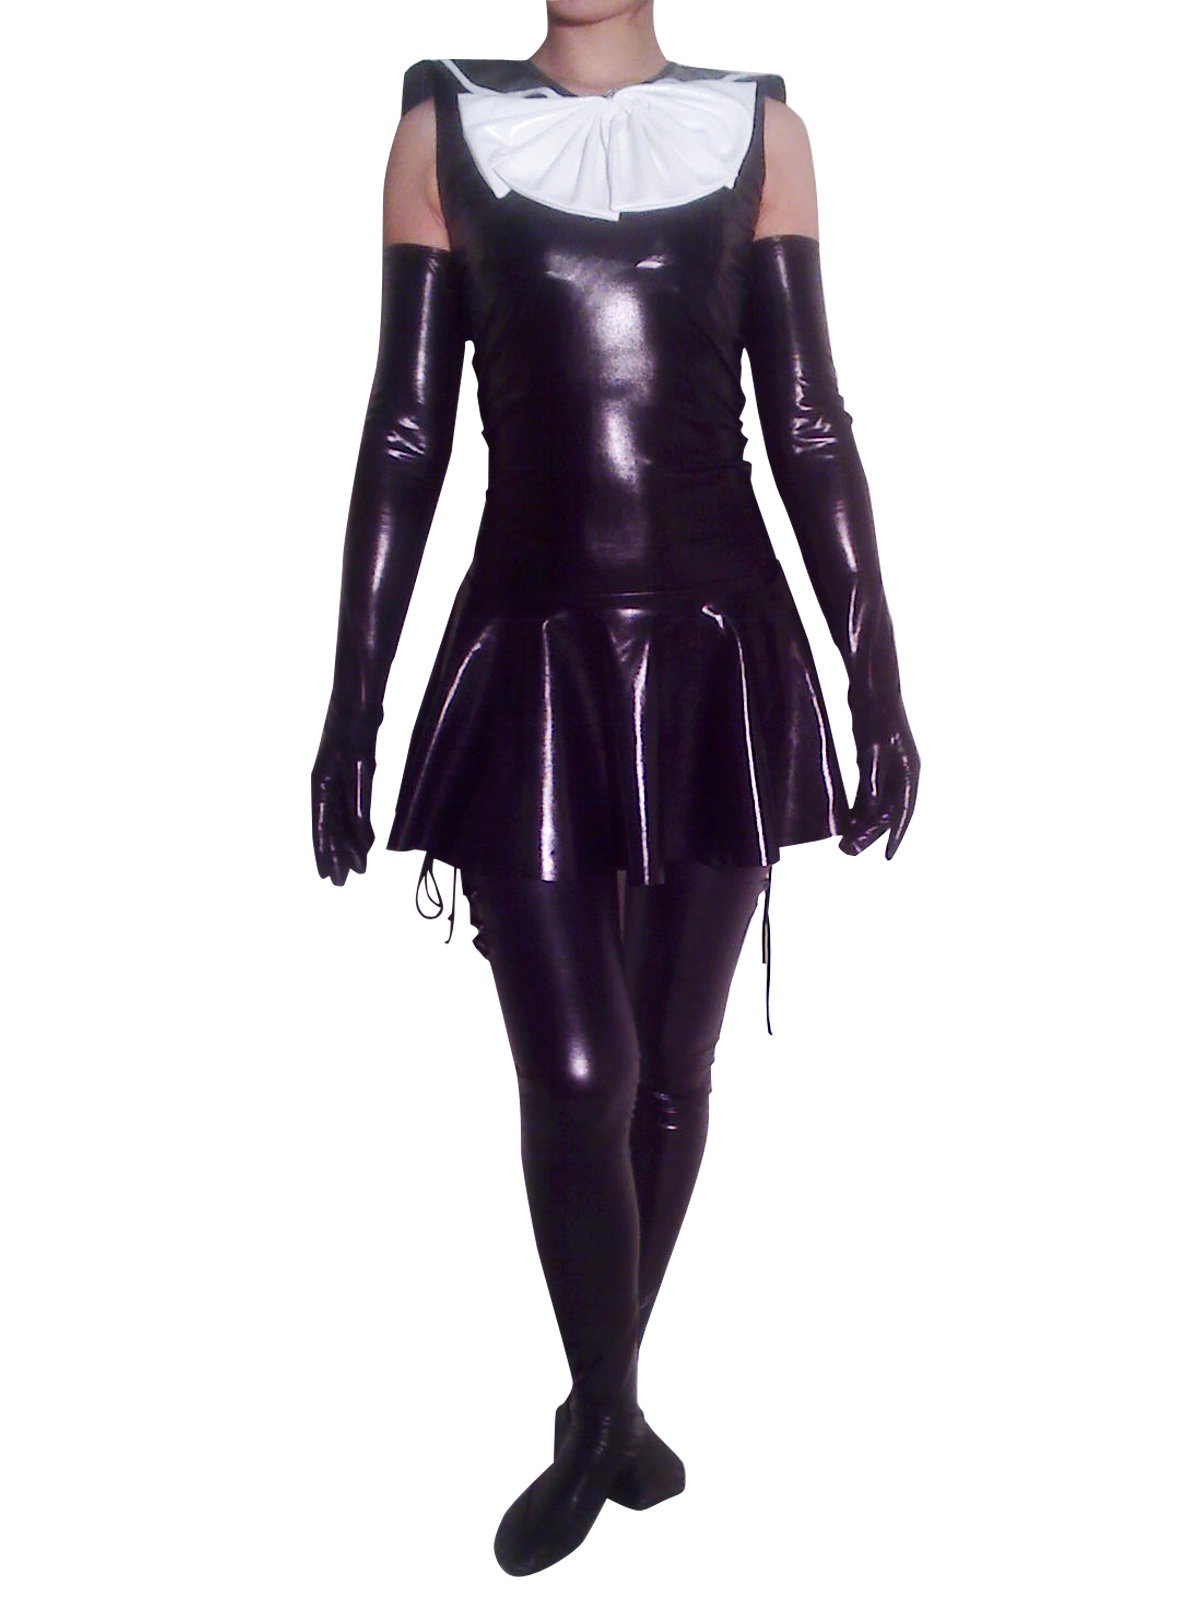 Halloween Maid Shiny Metallic Catsuit with Shoulder Length Gloves and Stockings Halloween